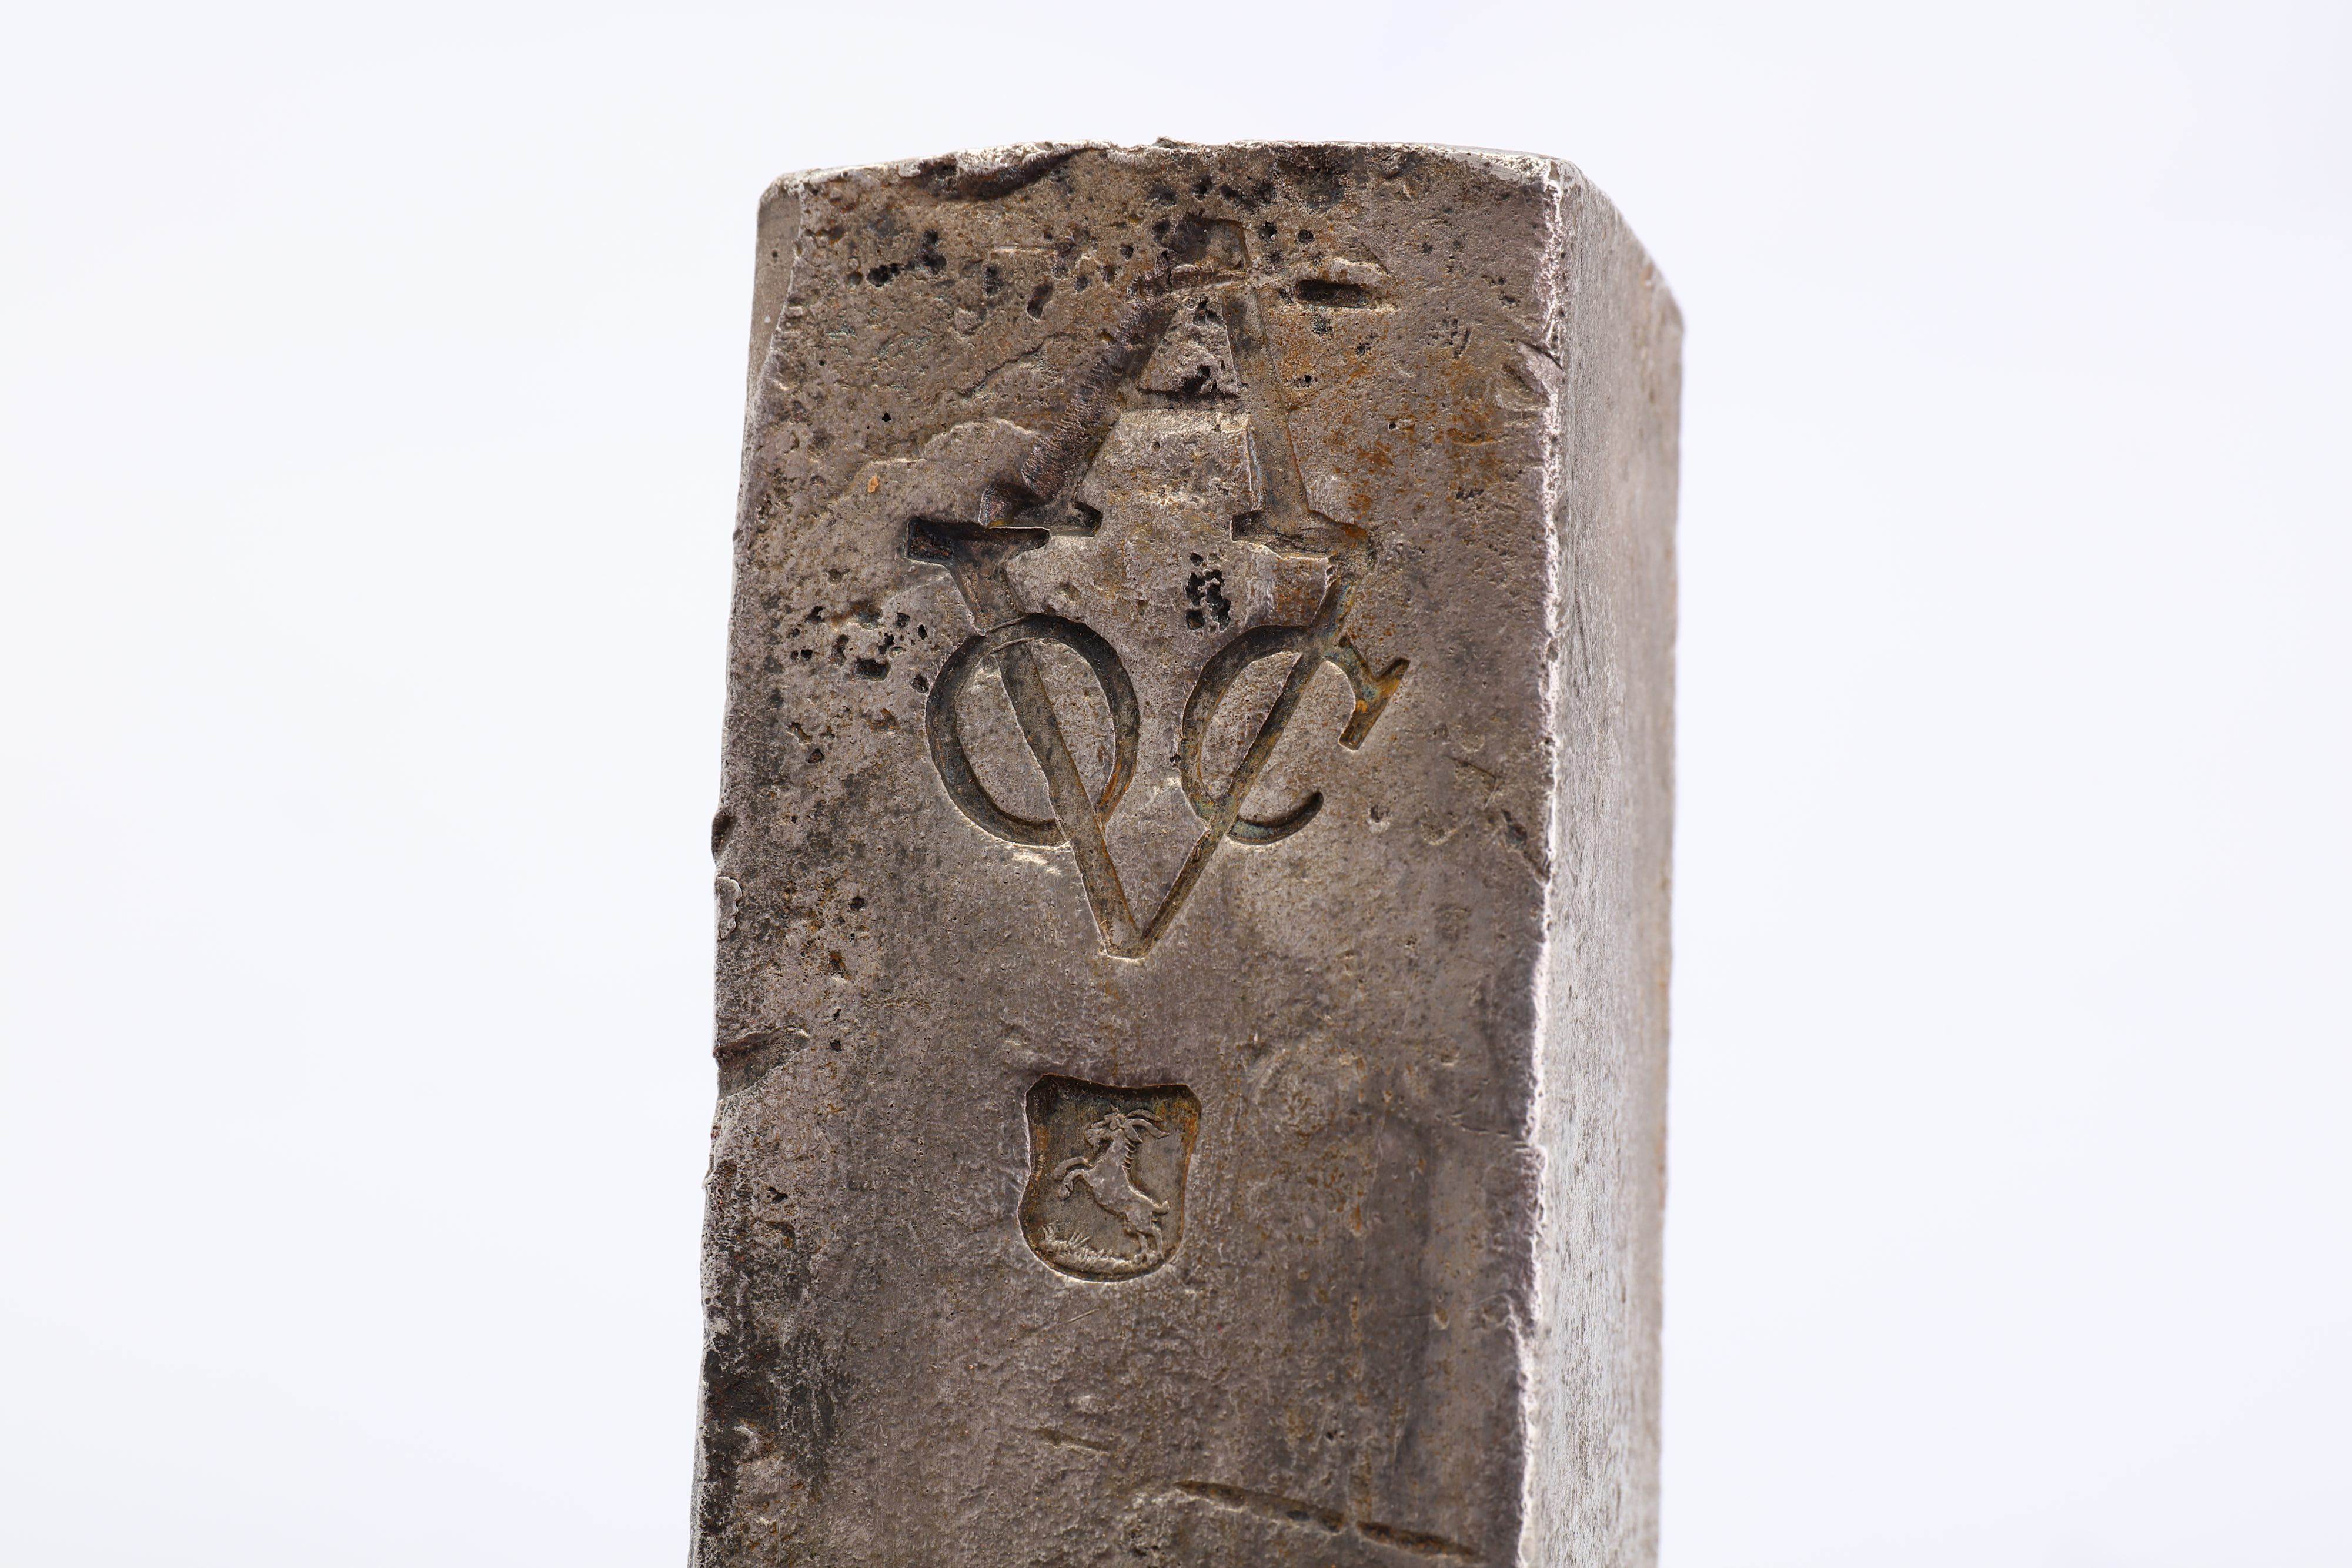 A DUTCH EAST INDIA COMPANY (V.O.C.) SILVER INGOT FROM THE ROOSWIJK CARGO STAMPED WITH THE MARK OF TH - Image 3 of 5